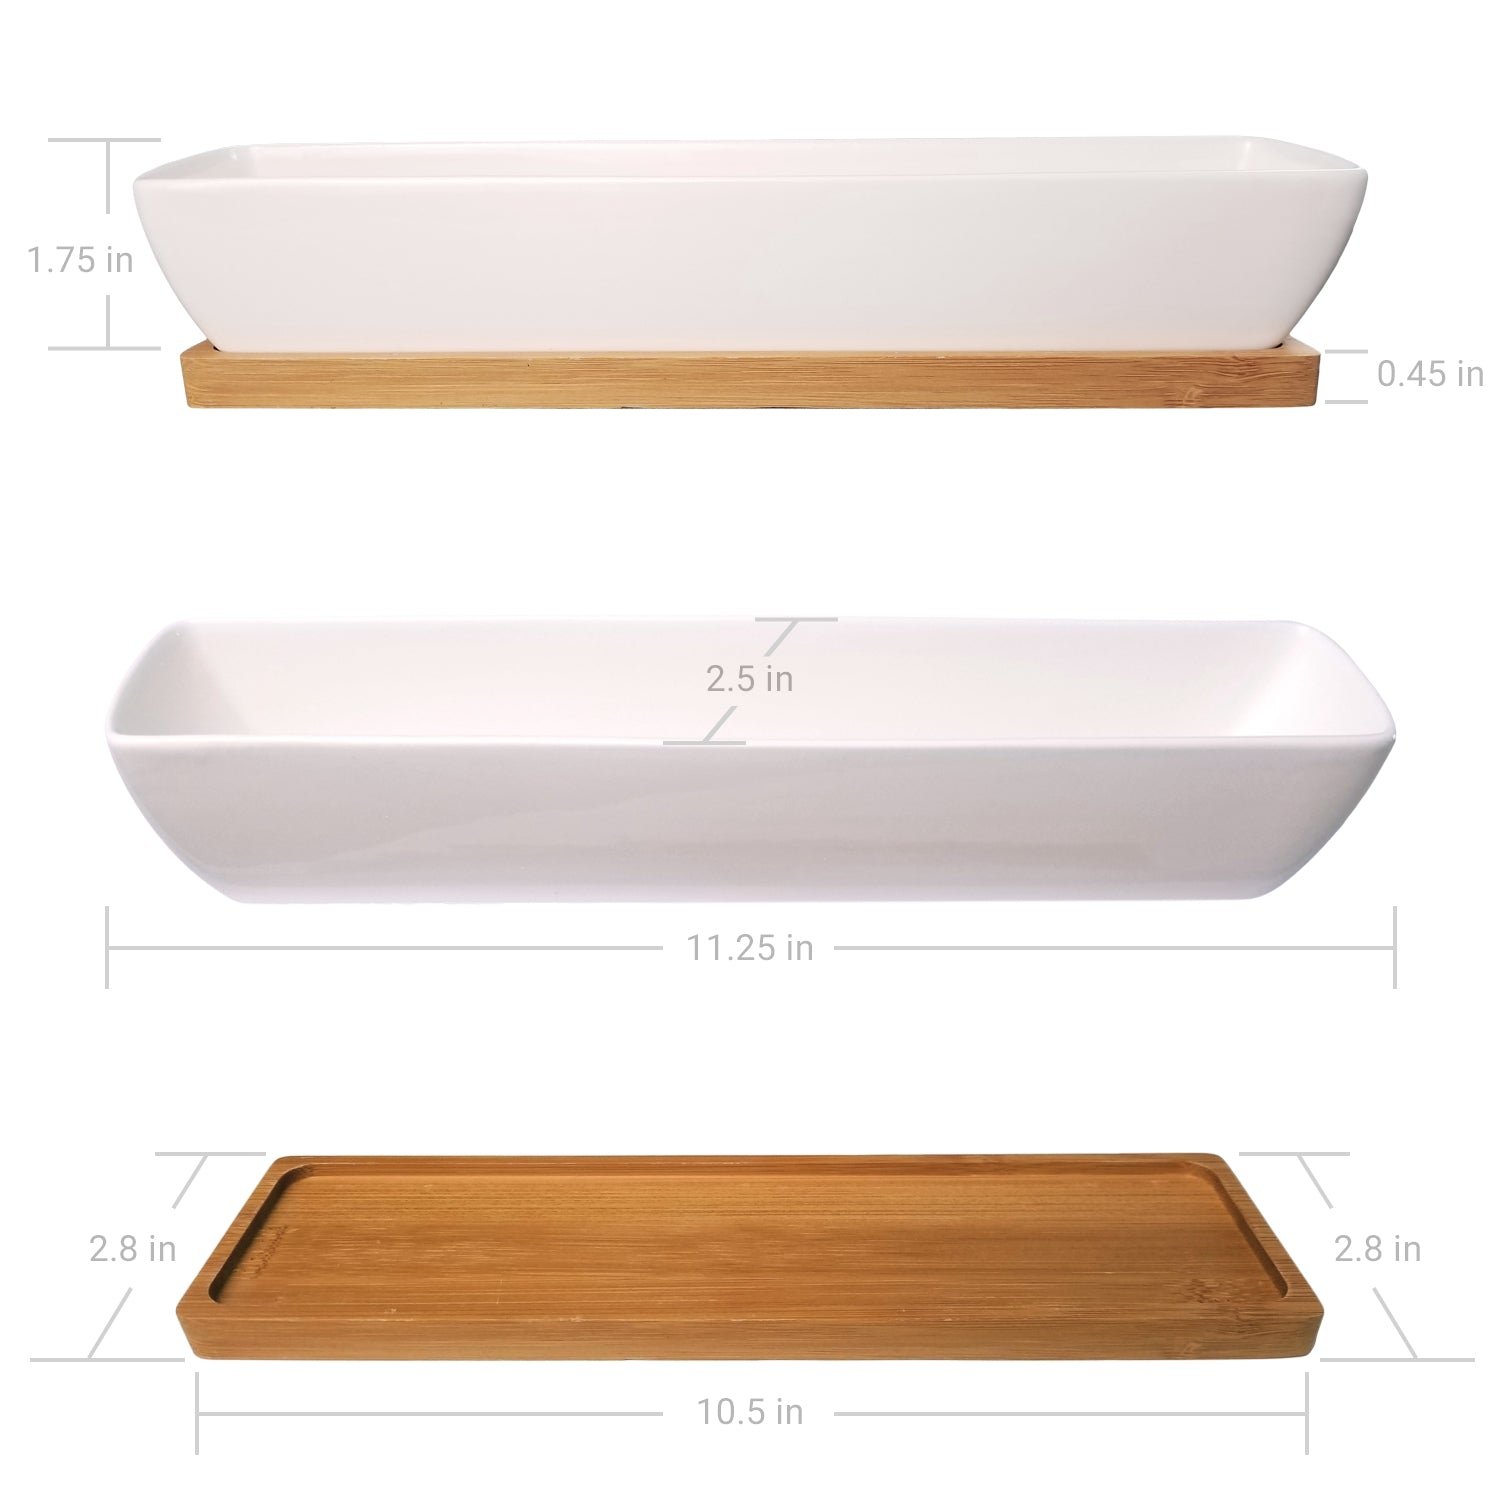 "11"" Long, Rectangle, Mini Succulent Planter - Dimensions"